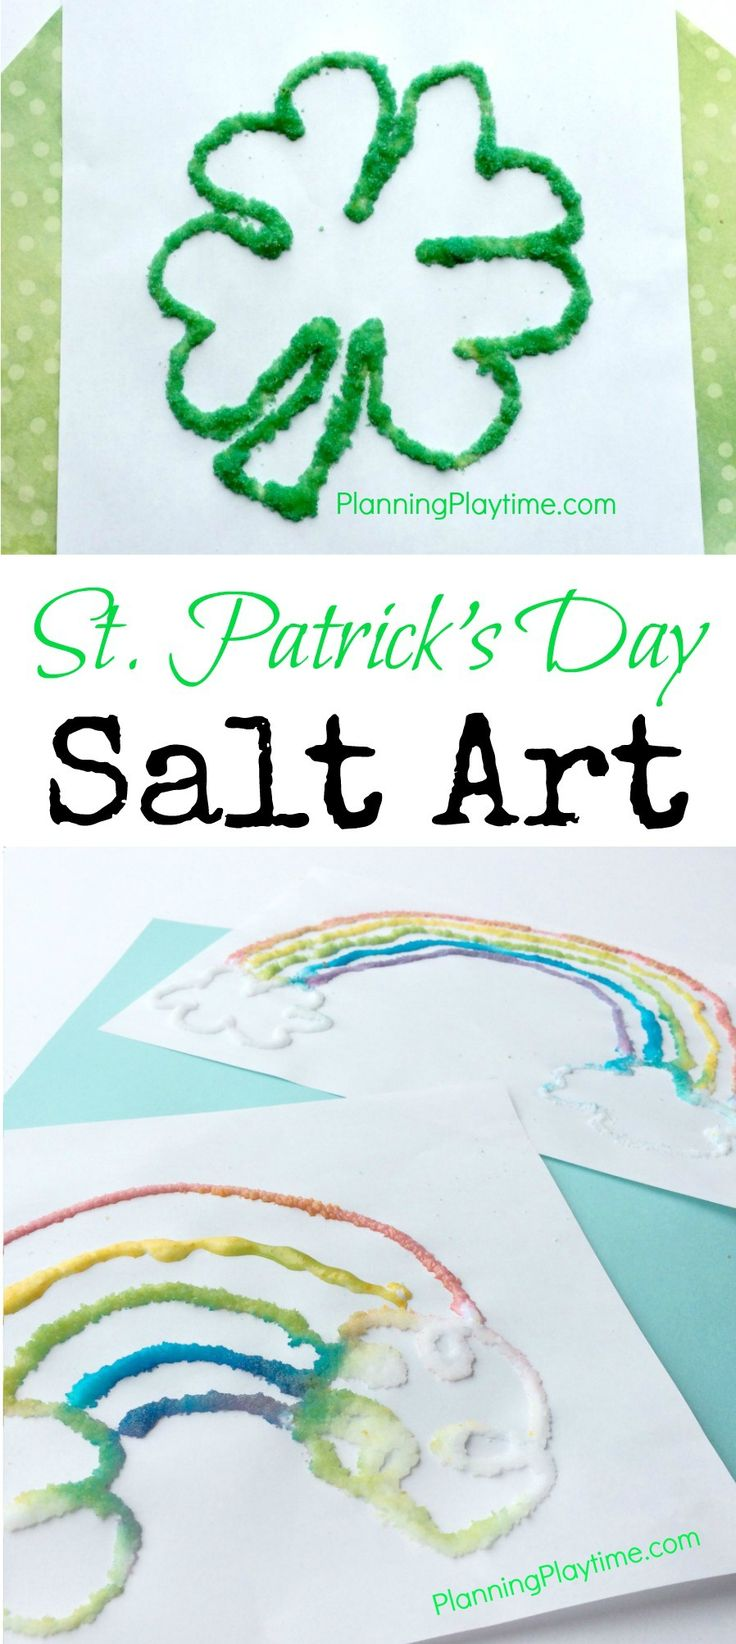 Images of St Patrick Rsquo S Day - #SC